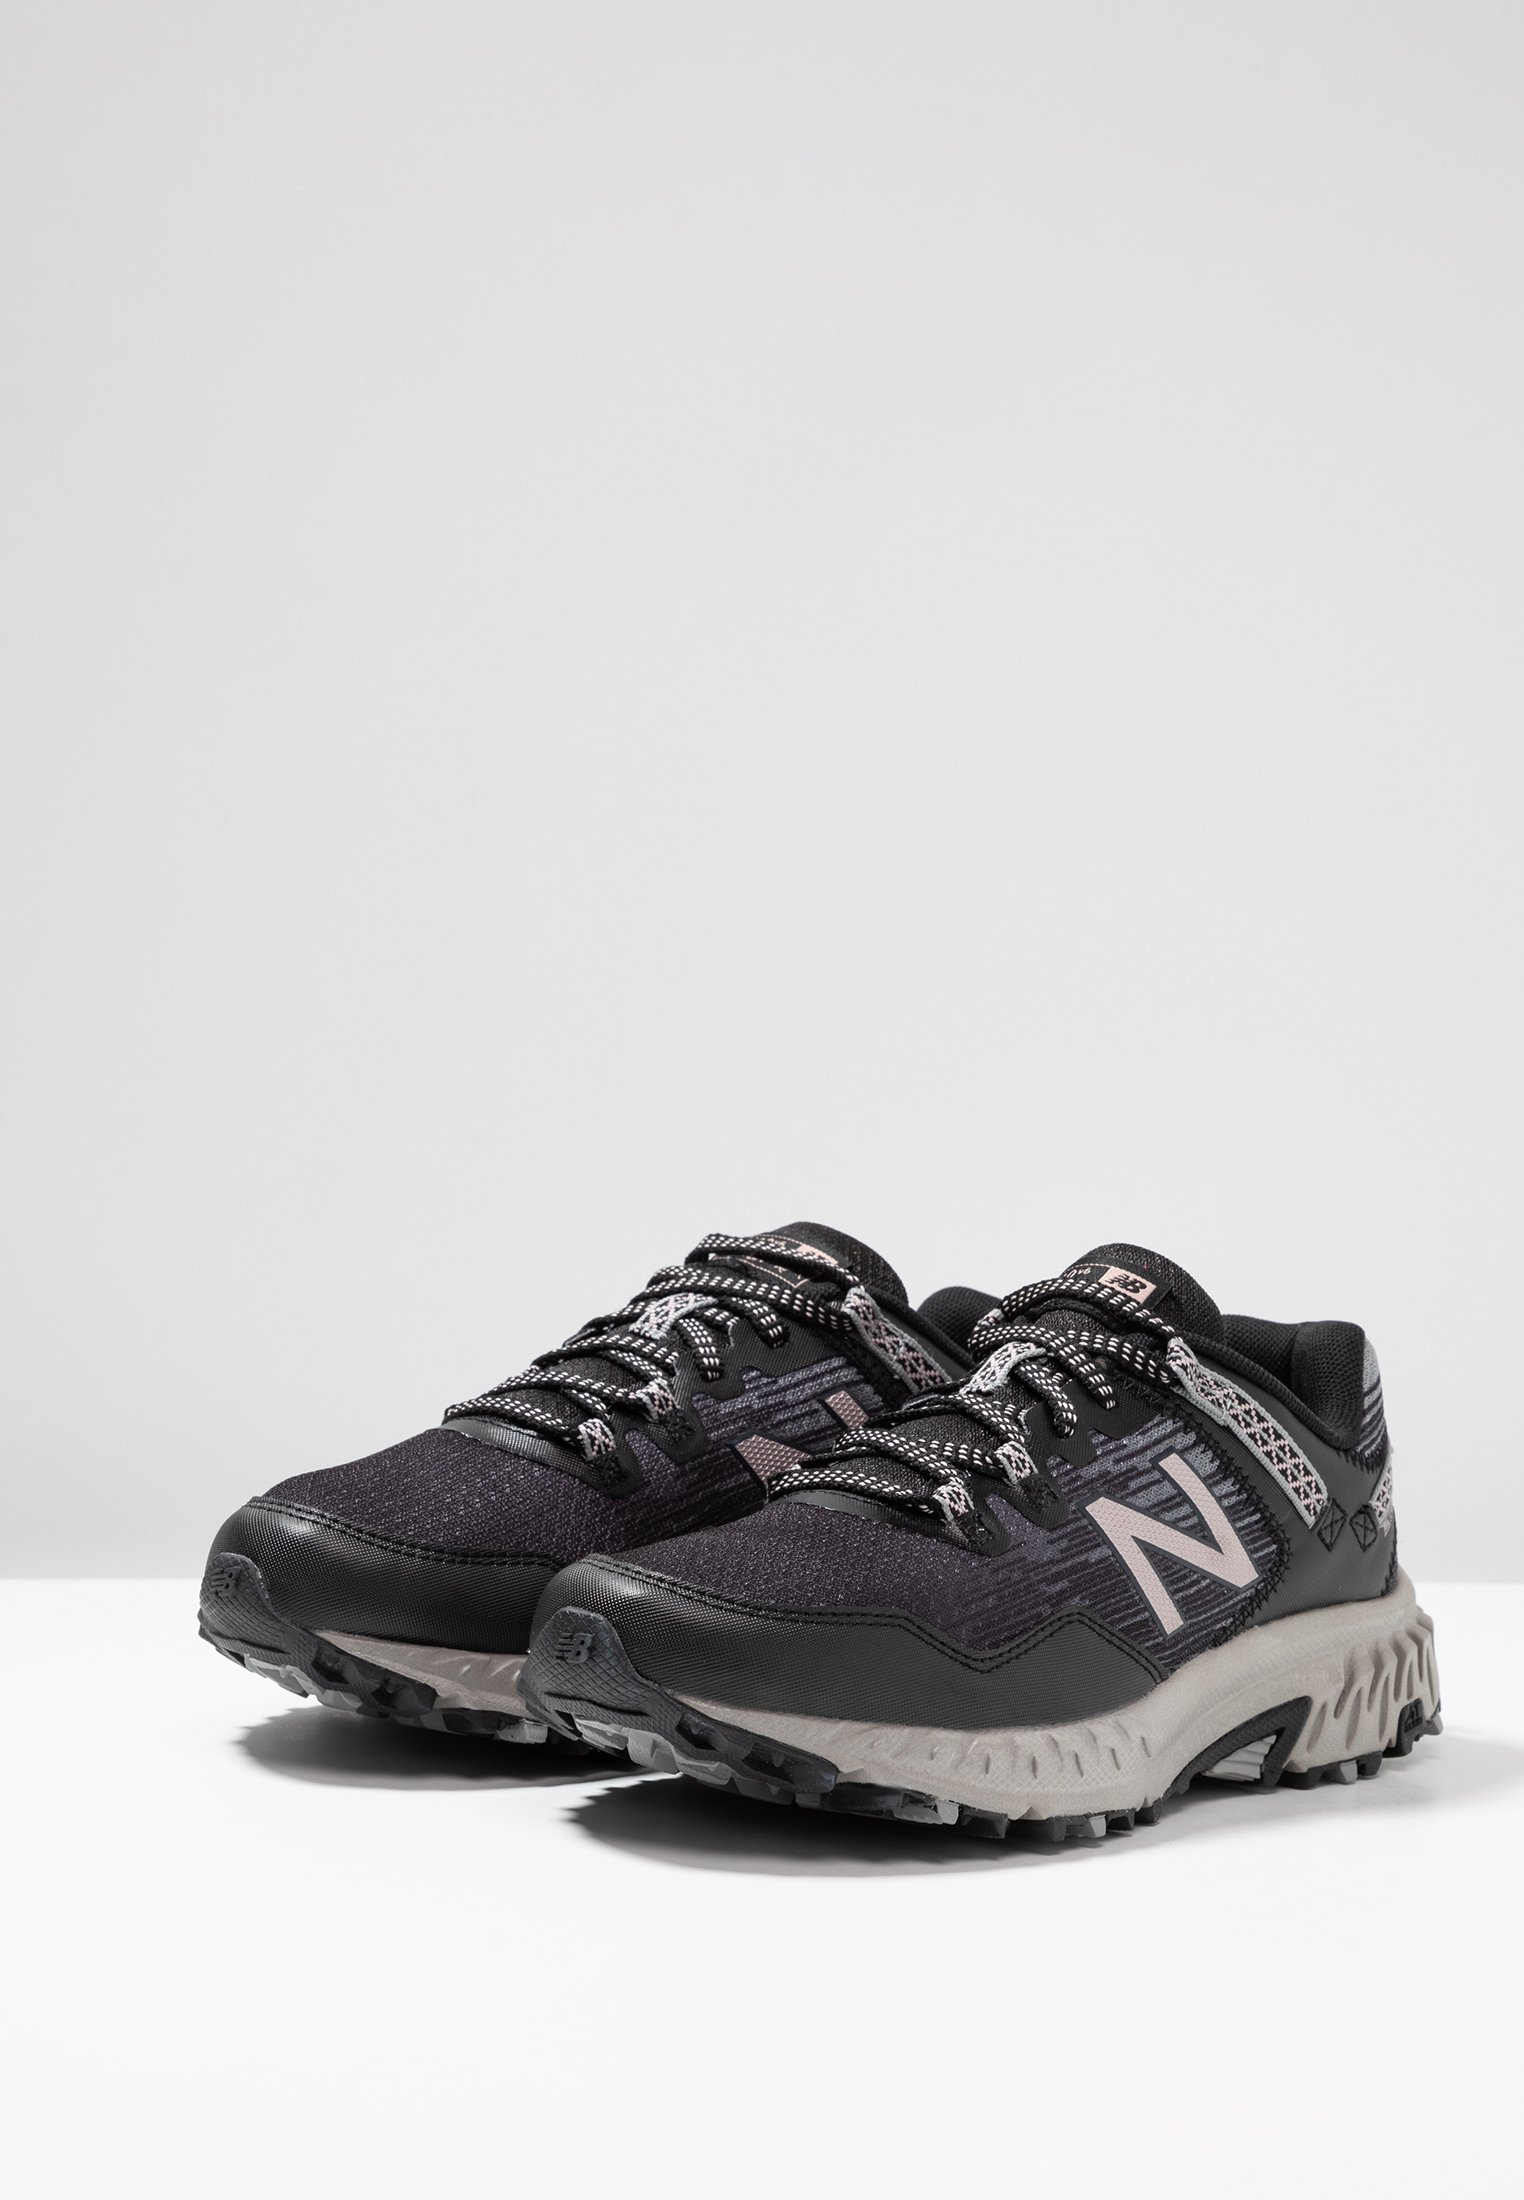 Course grey Black De V6Chaussures 410 New Balance eEHbD2YW9I